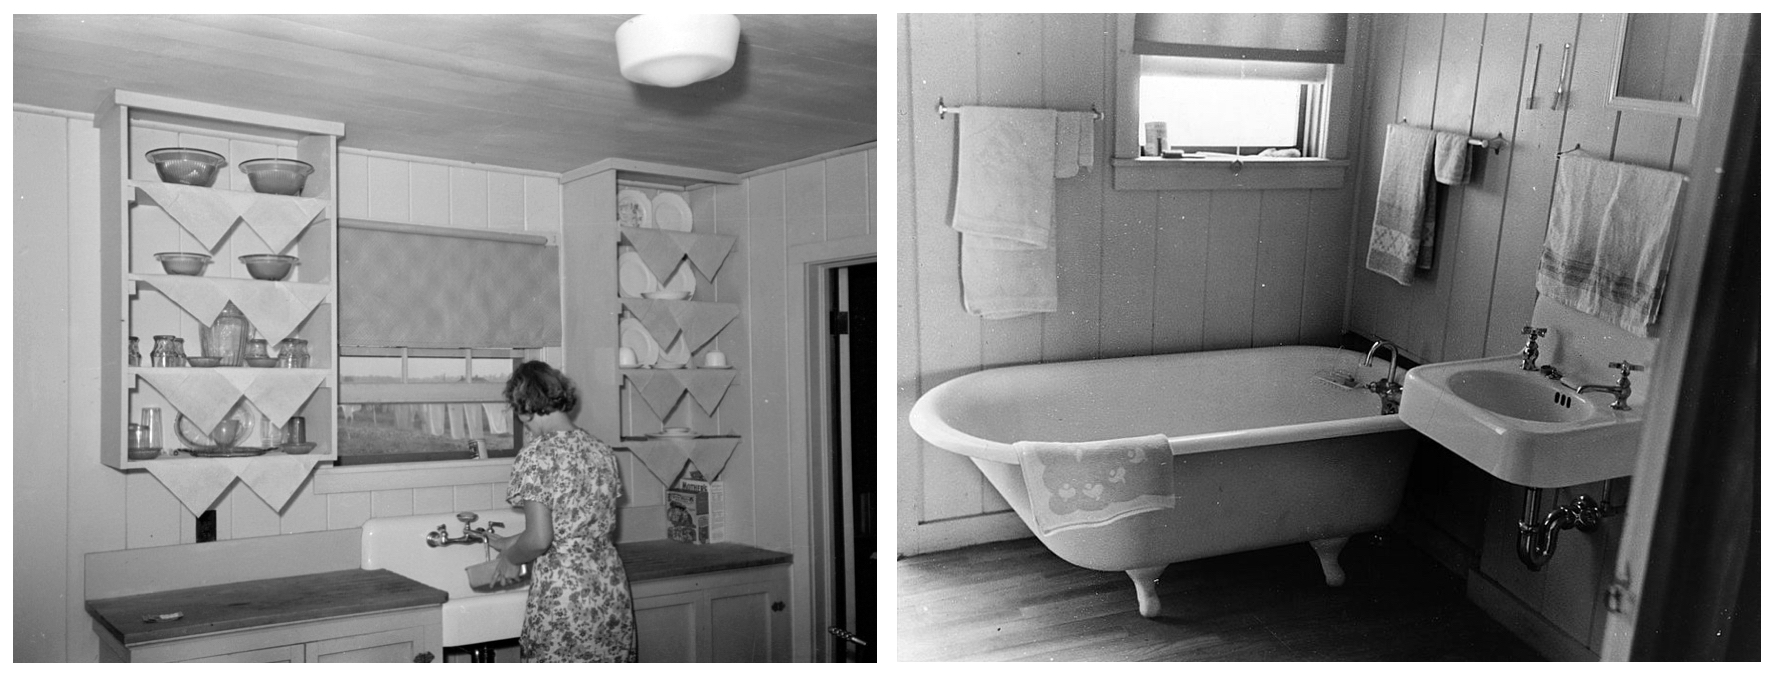 Left: Kitchen in farm home, Lake Dick Project, 1938. Russell Lee.  Right: Bathroom in farmer's home, Lake Dick Project, 1938. Russell Lee.